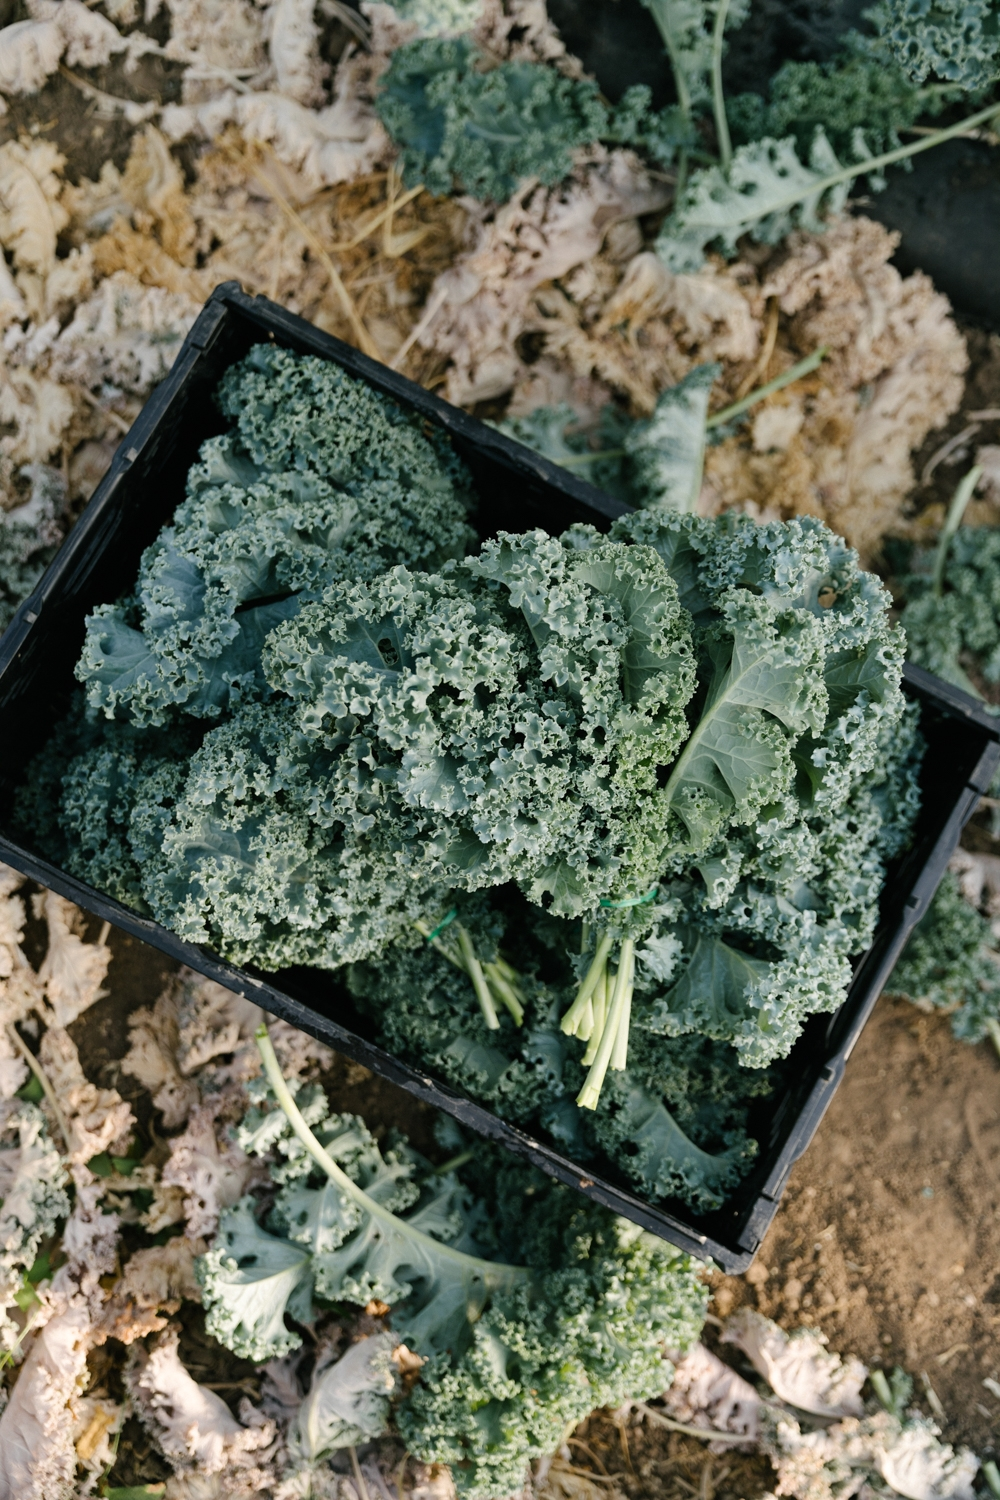 Jimena-Peck-Denver-Lifestyle-Editorial-Photographer-Native-Hill-Farm-The-Veggies-Harvested-Kale